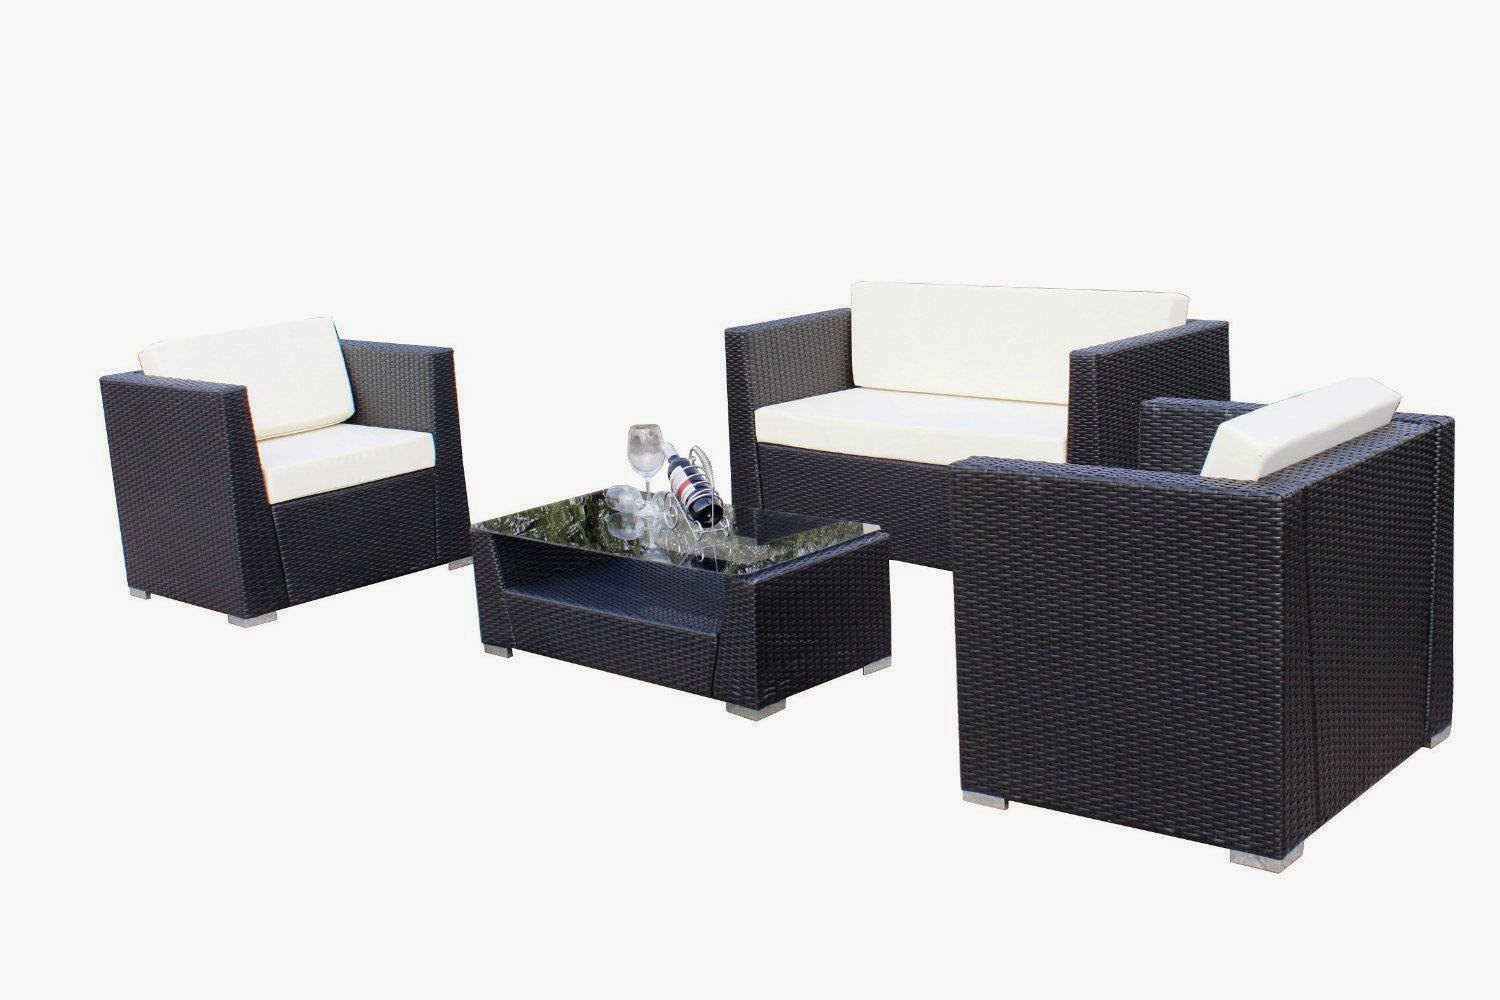 Sale Off 86% Luxury Wicker Patio Sectional Indoor Outdoor Sofa ...